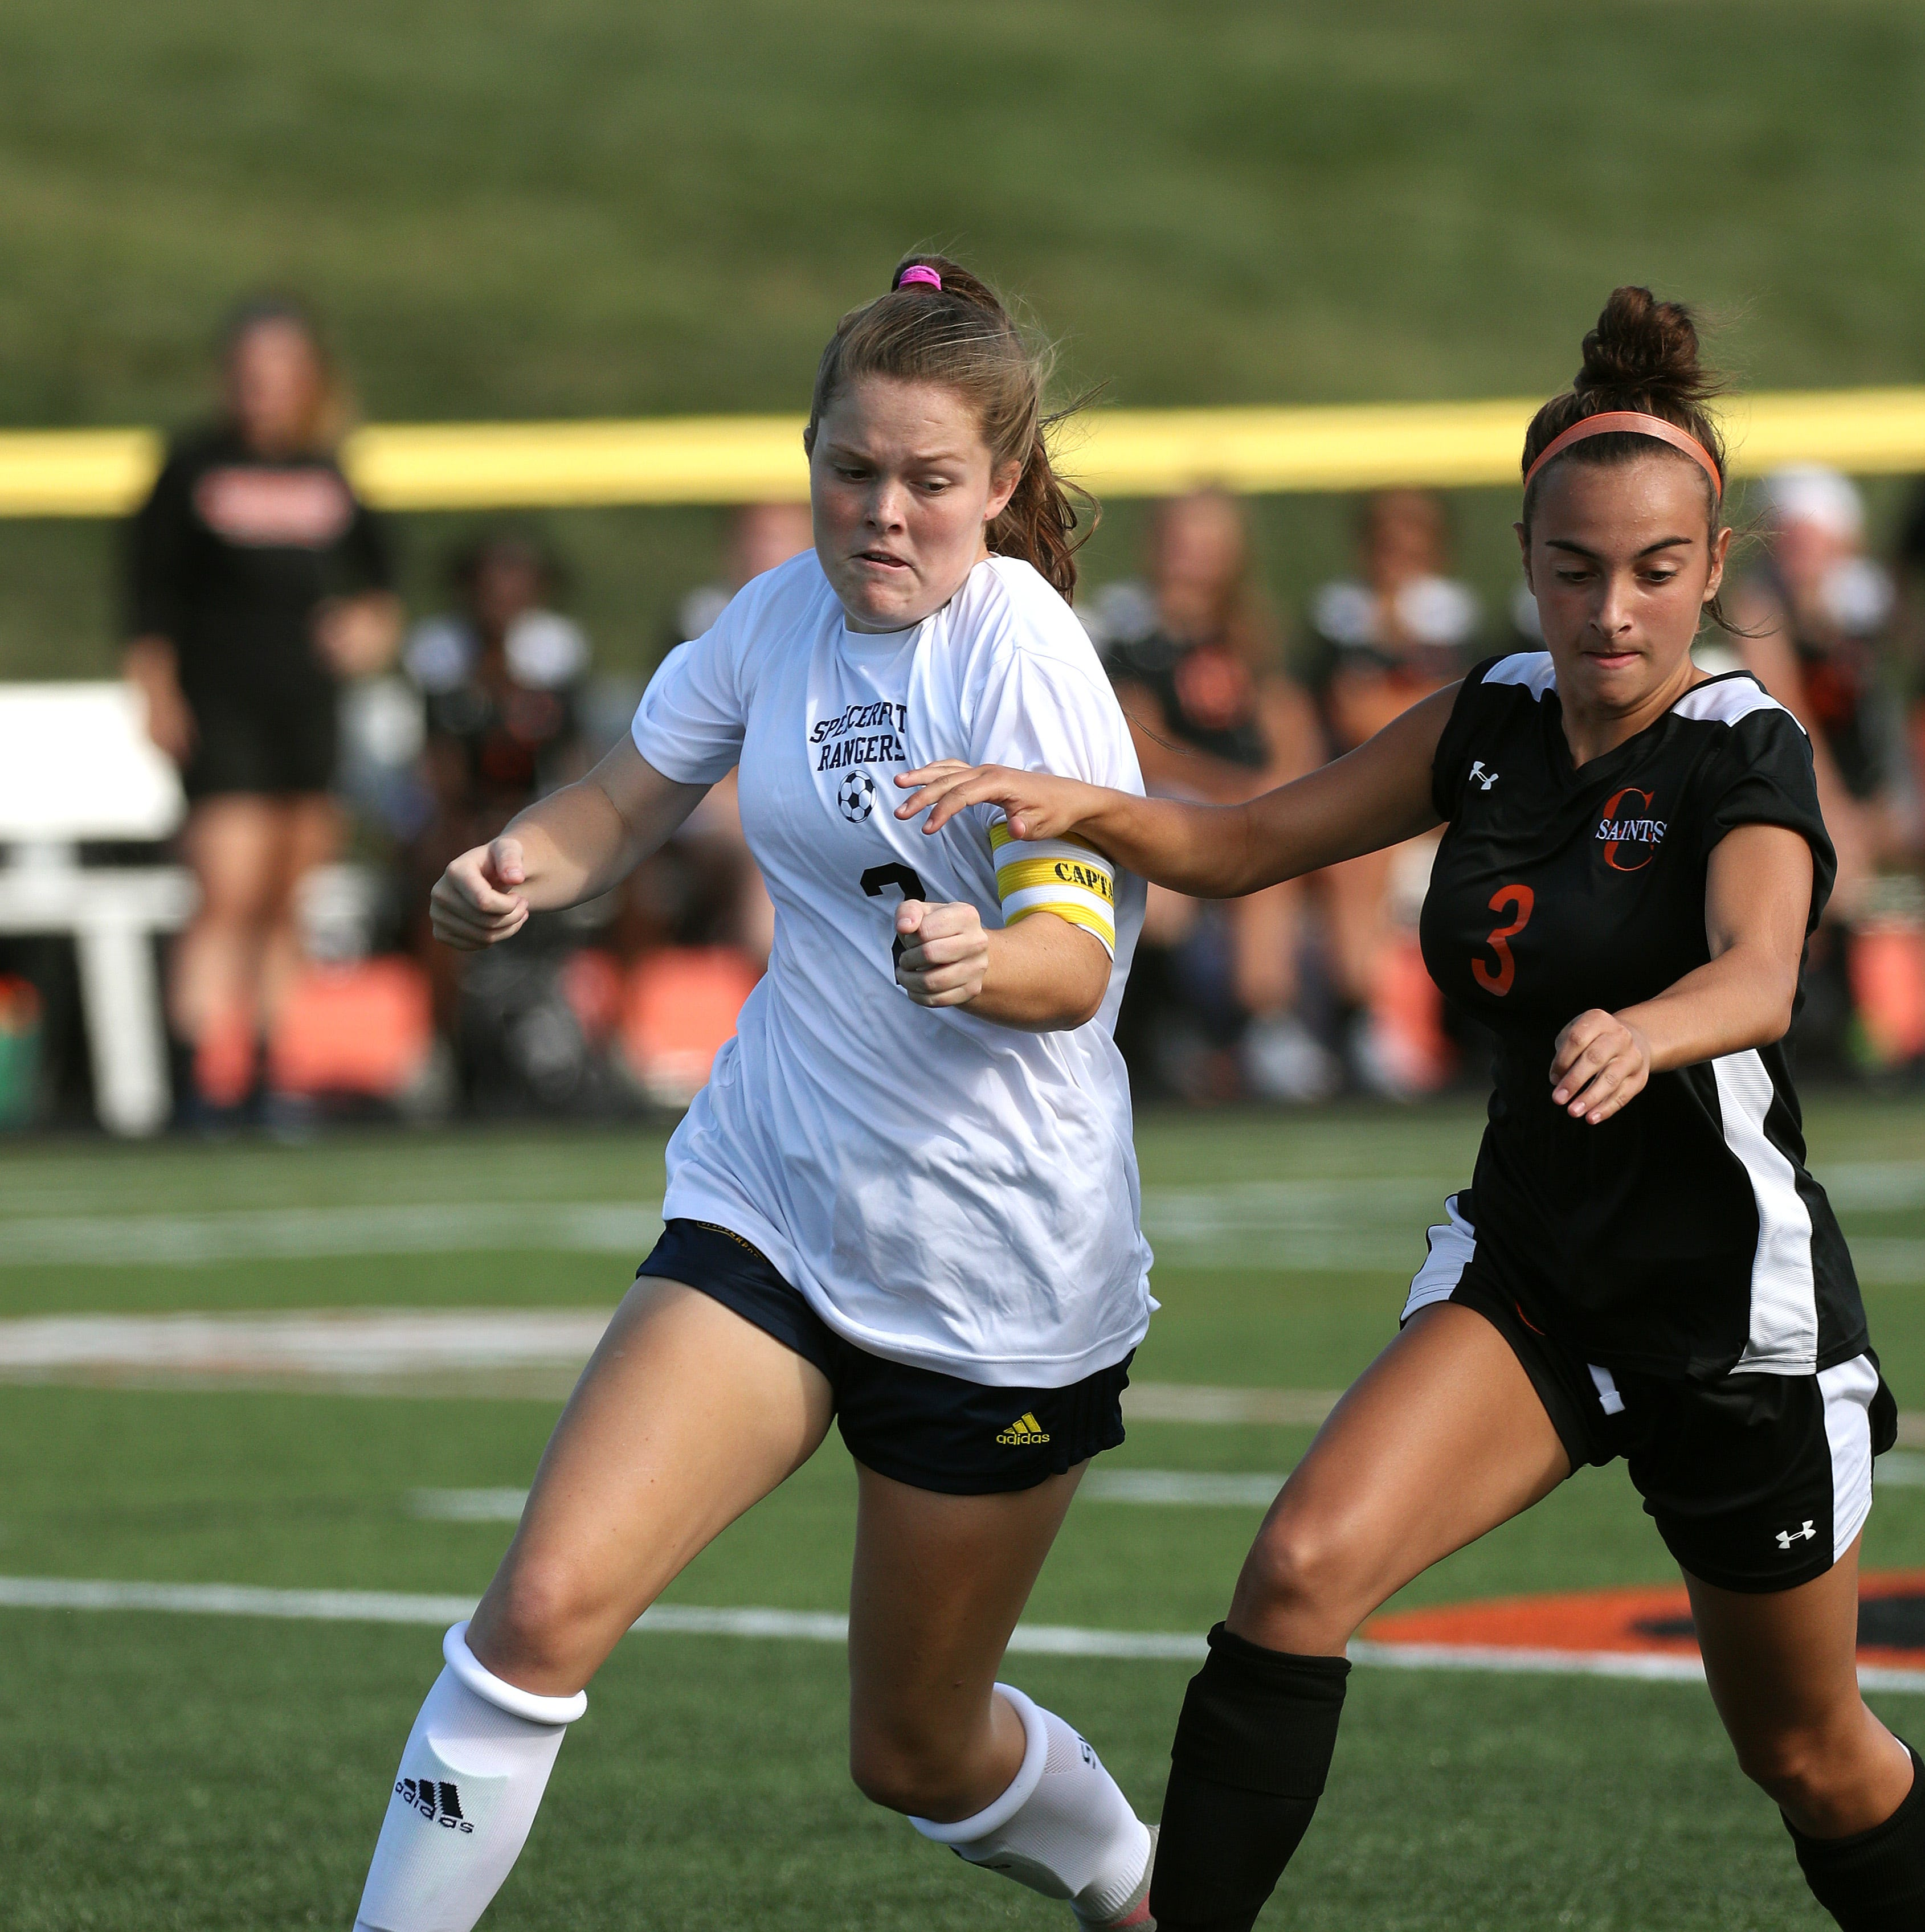 Penfield, Spencerport among No. 1 seeds in Section V girls soccer tournament